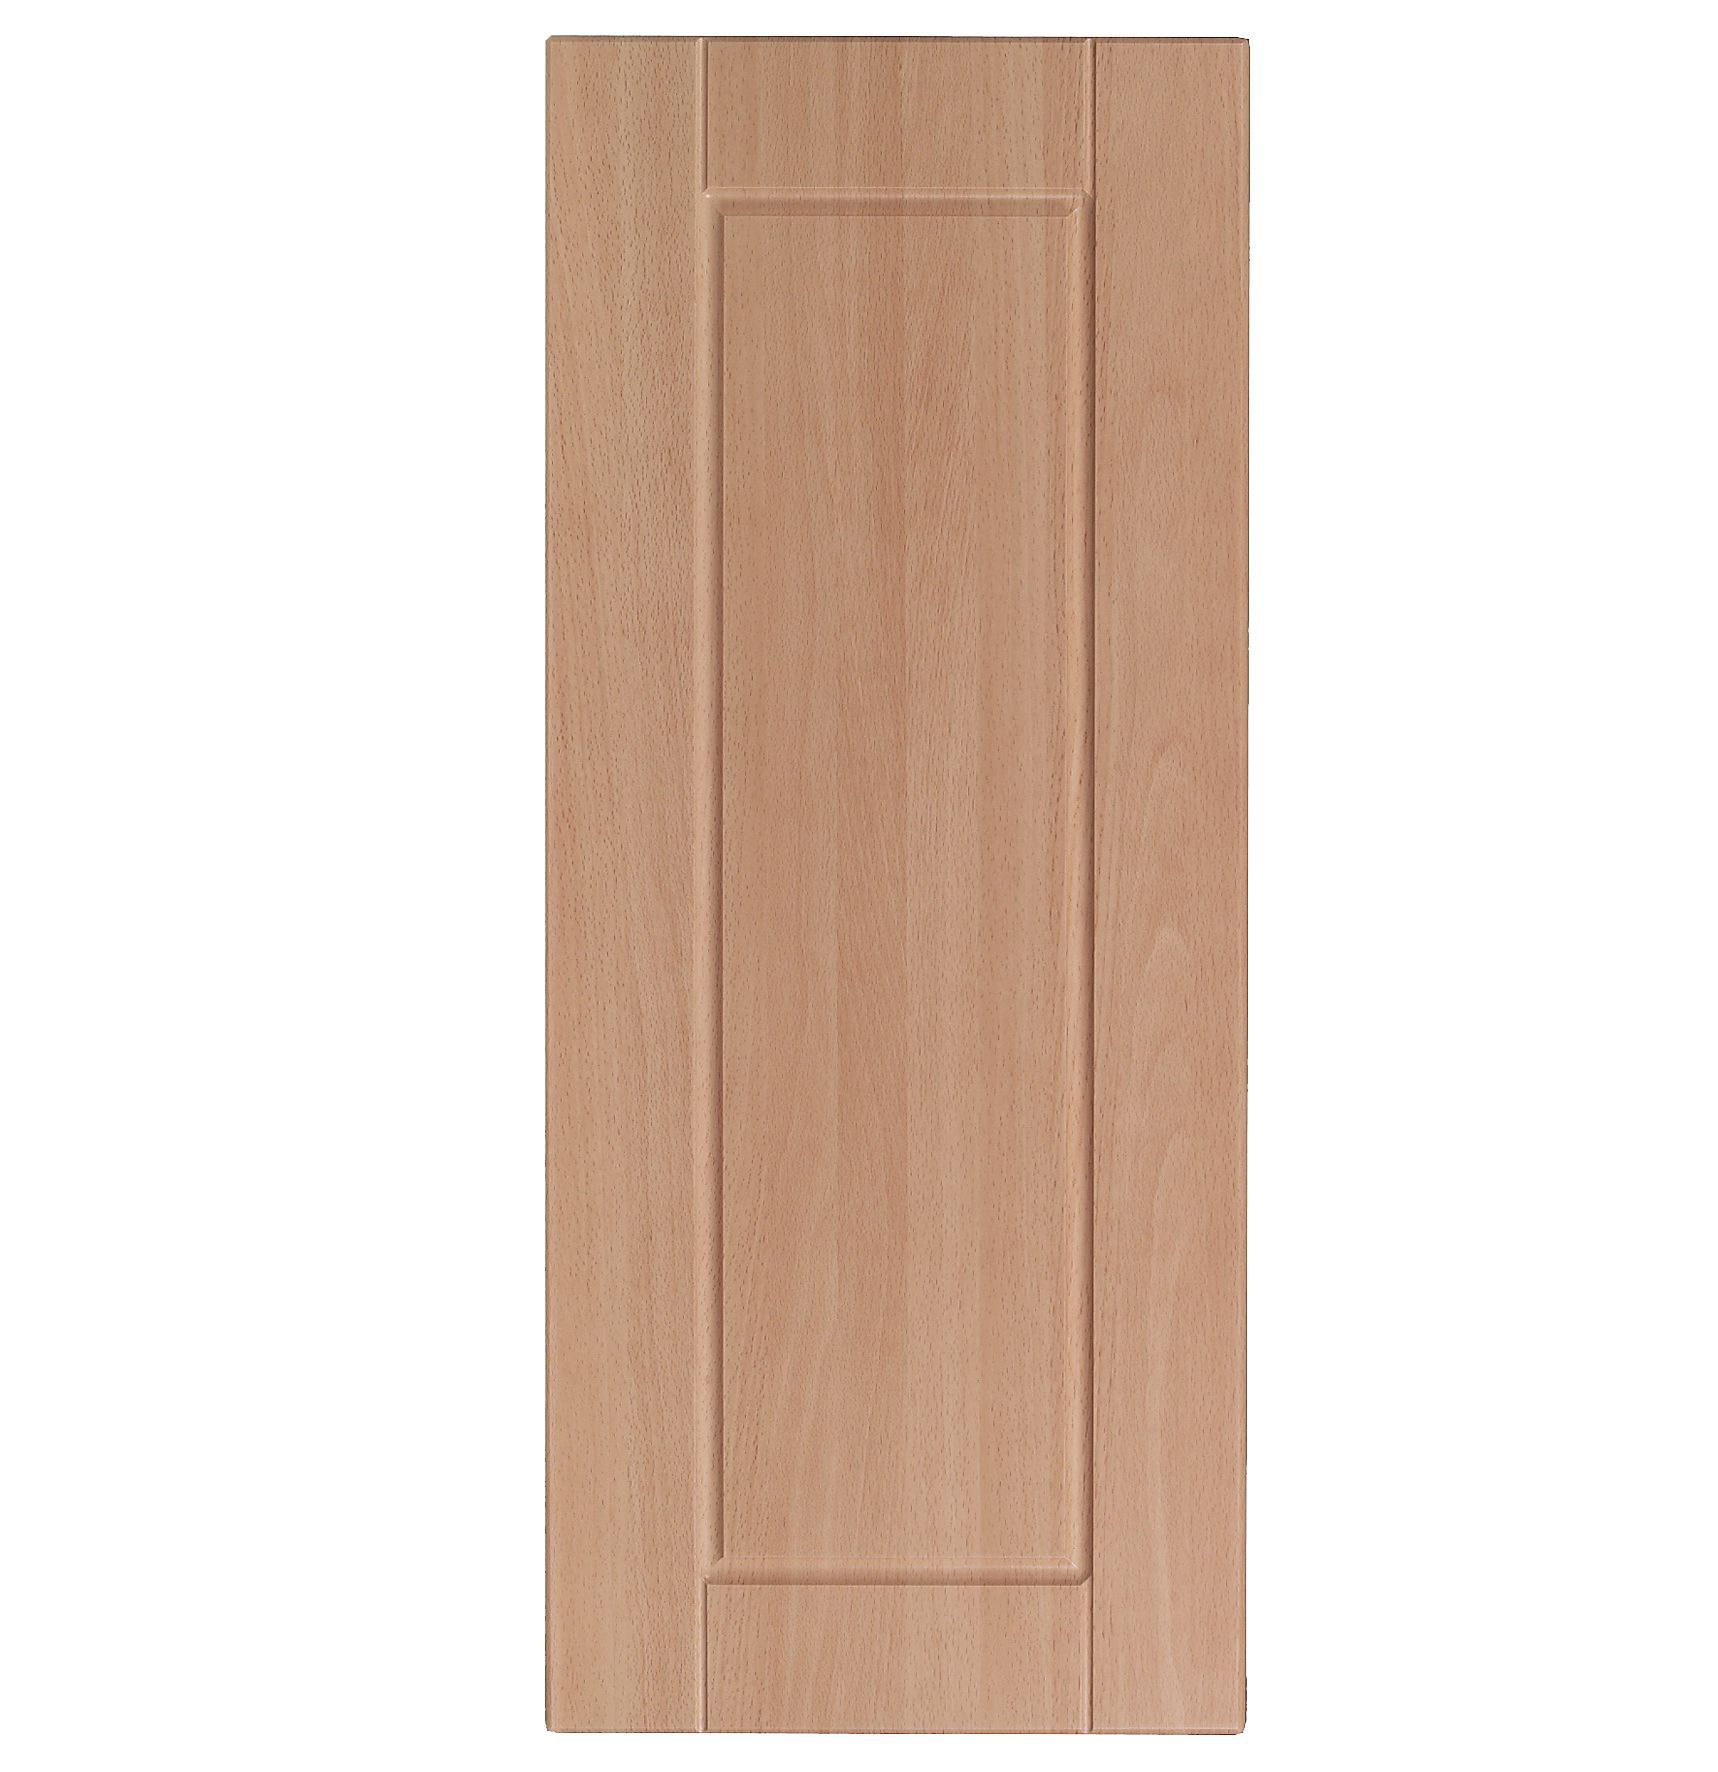 It kitchens walnut style modern corner wall door w 625mm for Beech effect kitchen base units